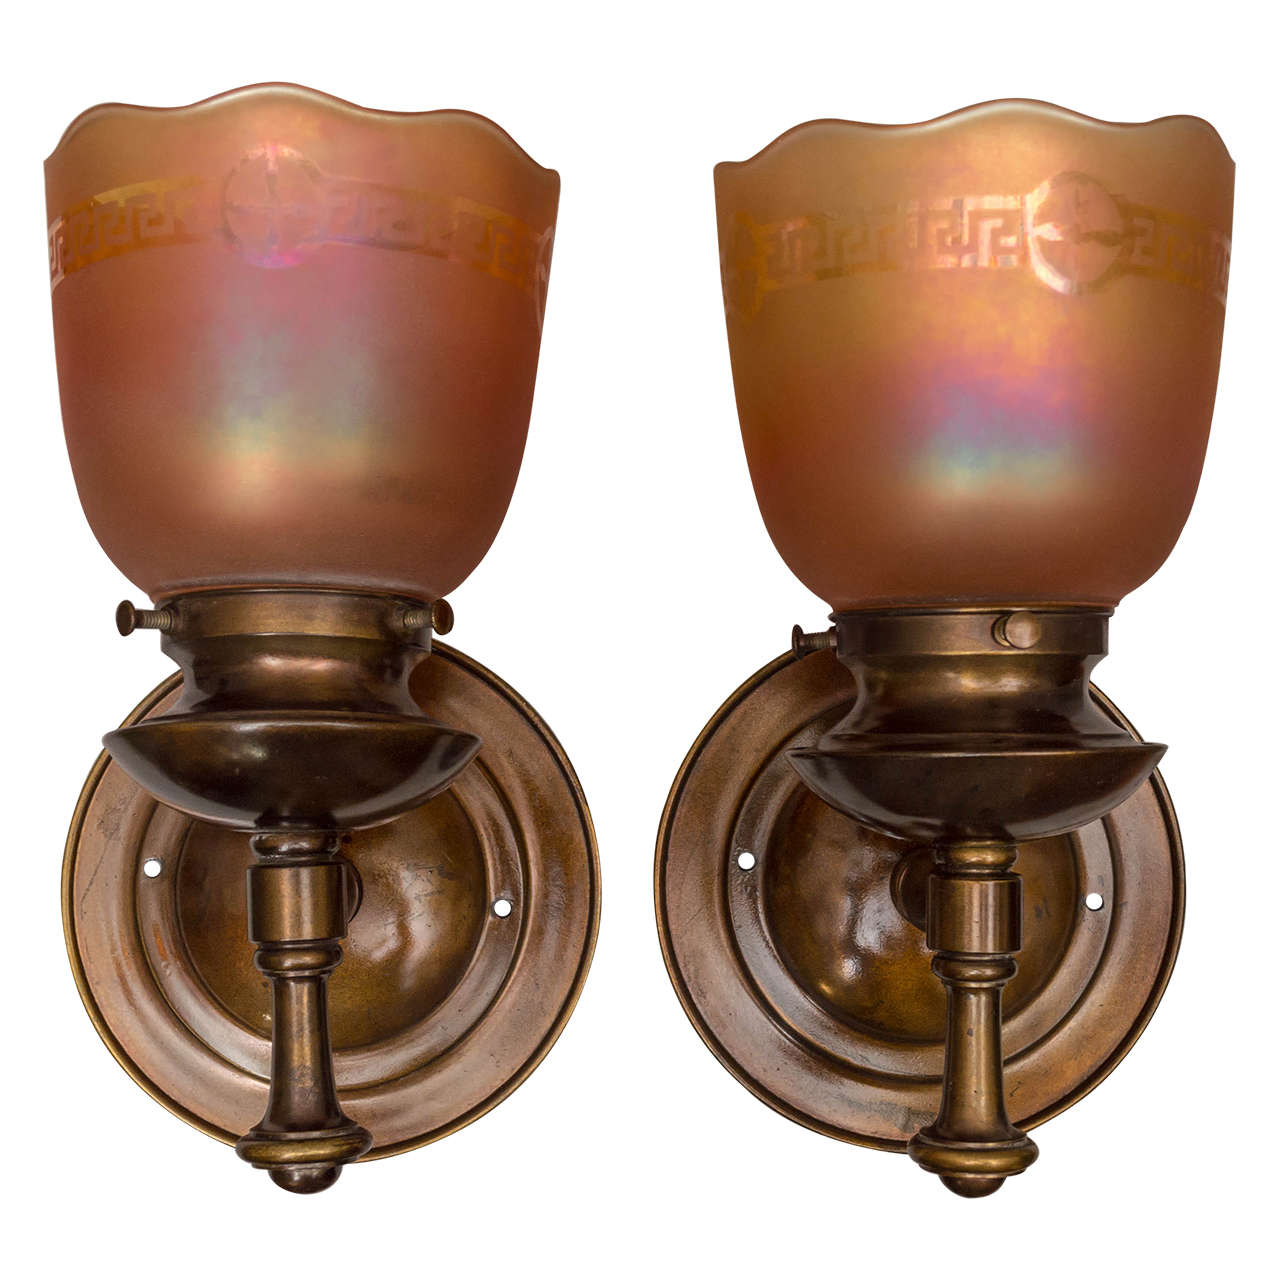 Pair Of Arts And Crafts Sconces With Carnival Glass Shades For Sale At 1stdibs